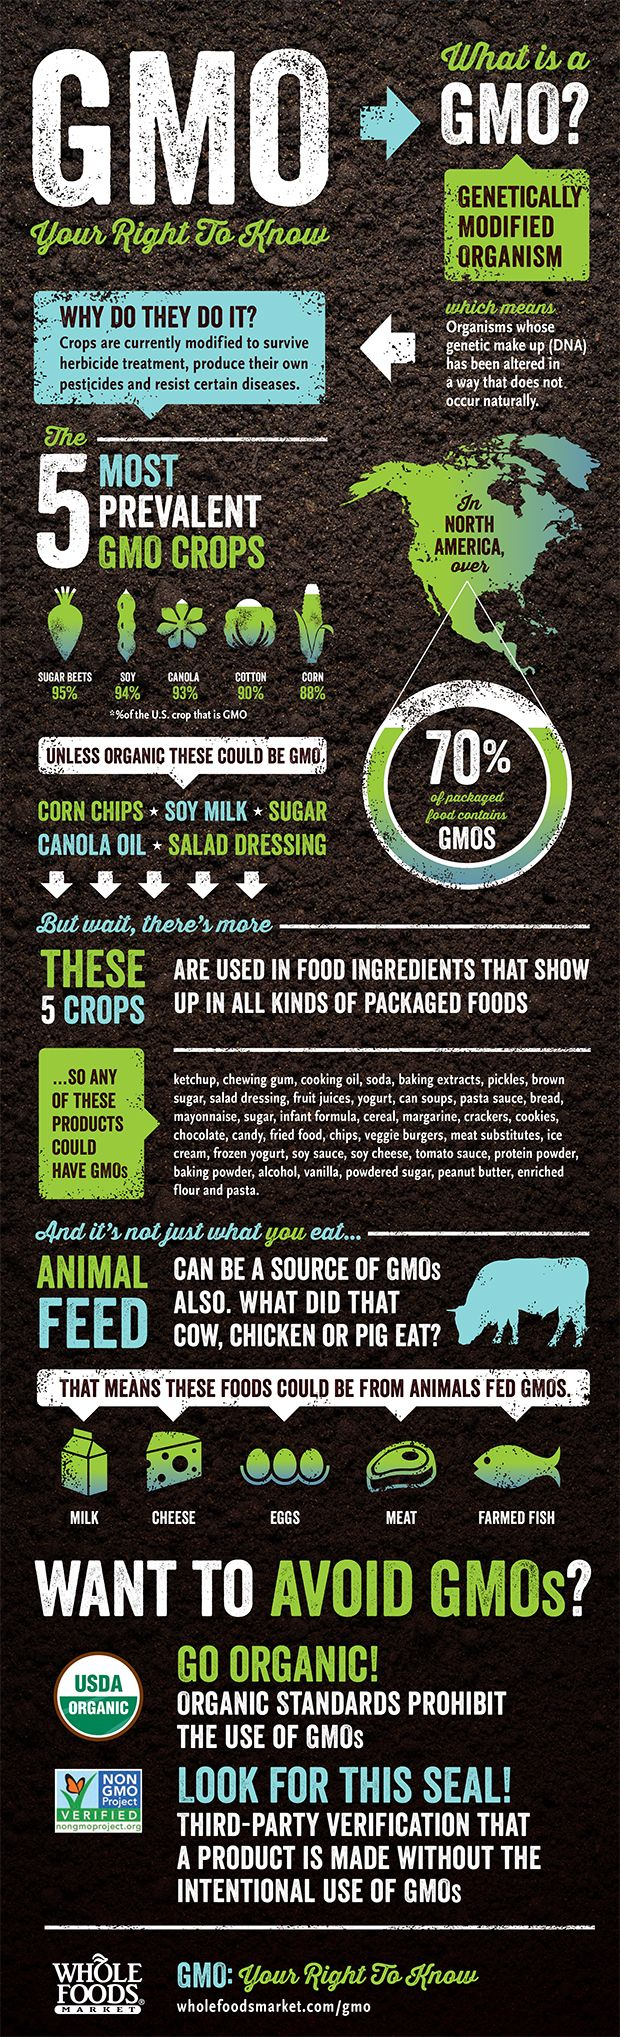 Does Whole Foods Sell Gmo Produce